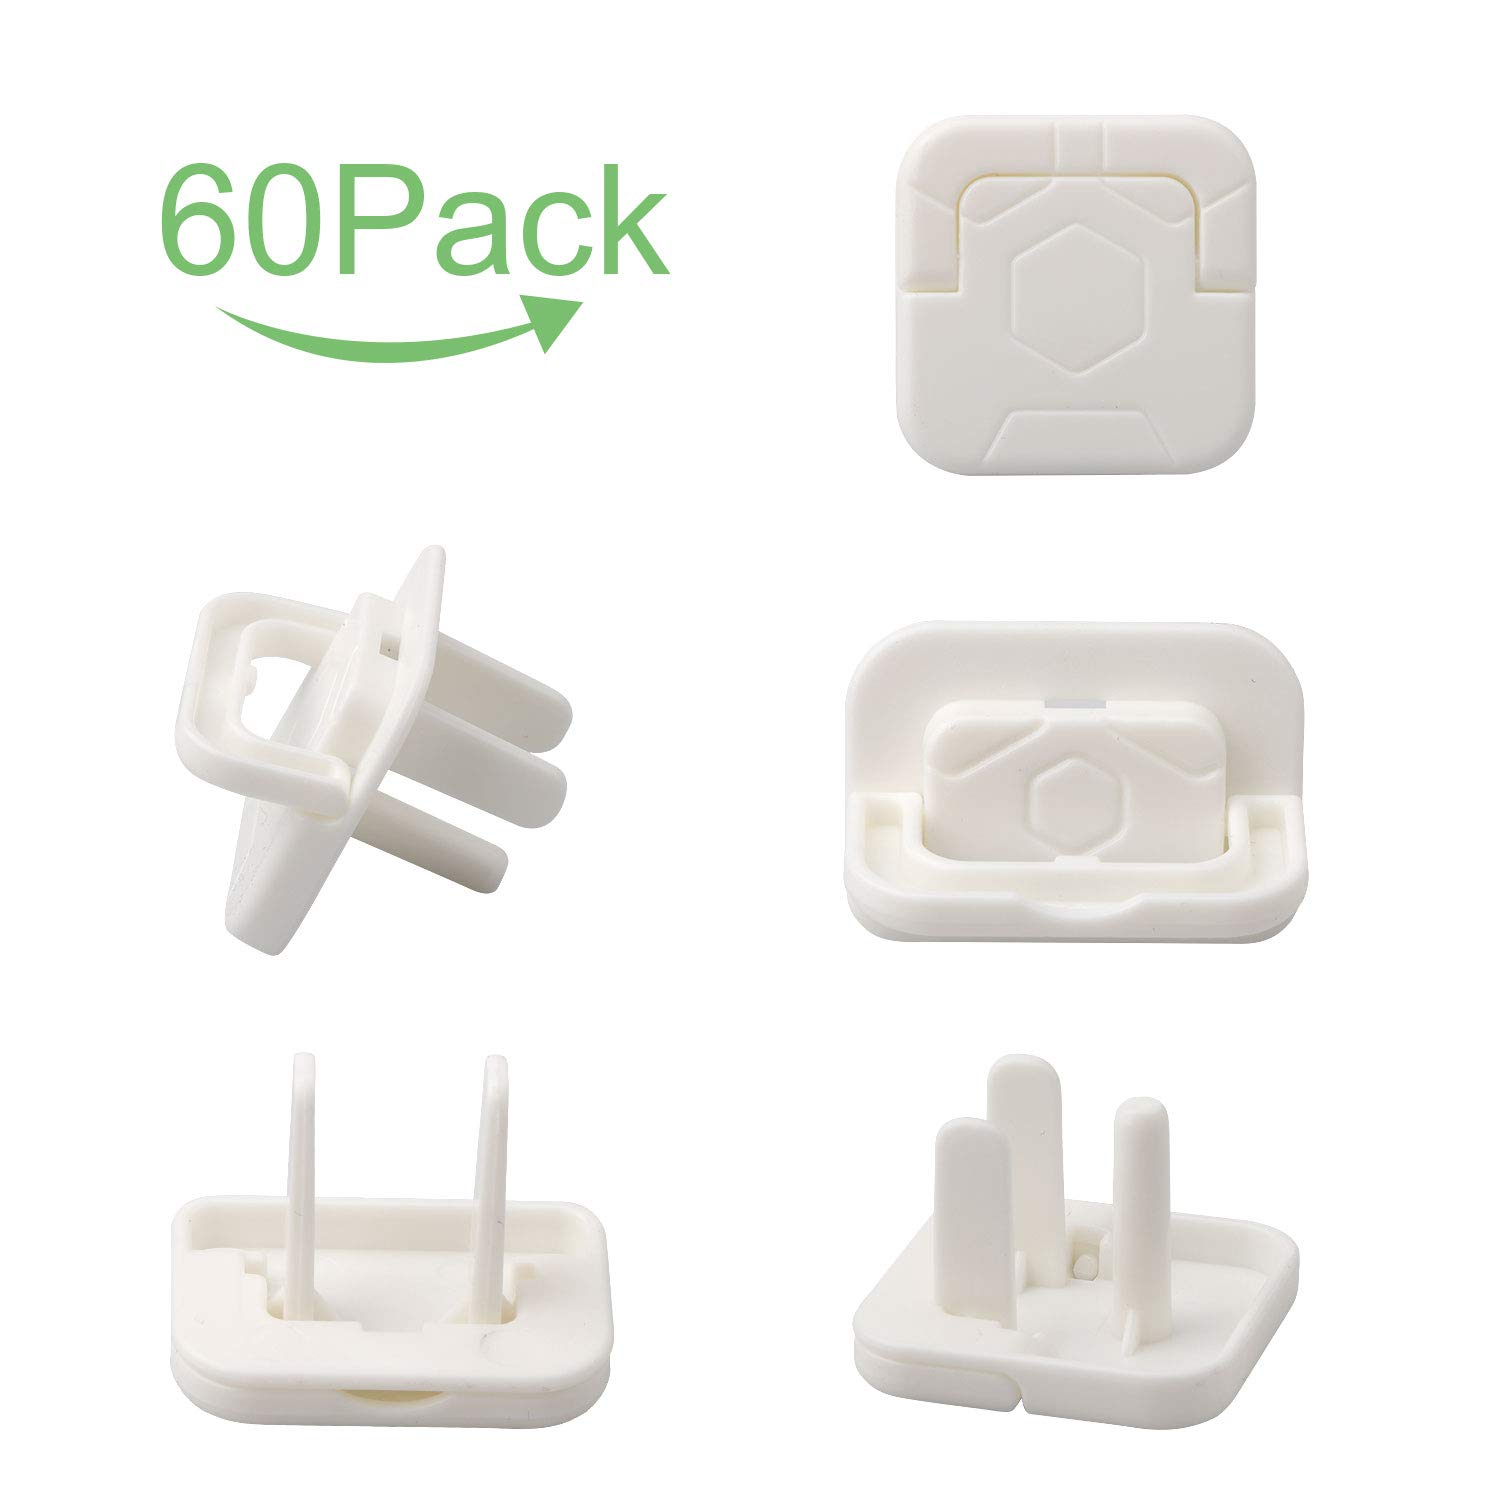 BERACKY Outlet Plug Covers Electrical Protector Child Proof Safety Caps Socket Covers 60 Pack | 2 Prong & 3 Prong Mixed | Simple Installation | Protect Toddlers & Babies by BERACKY